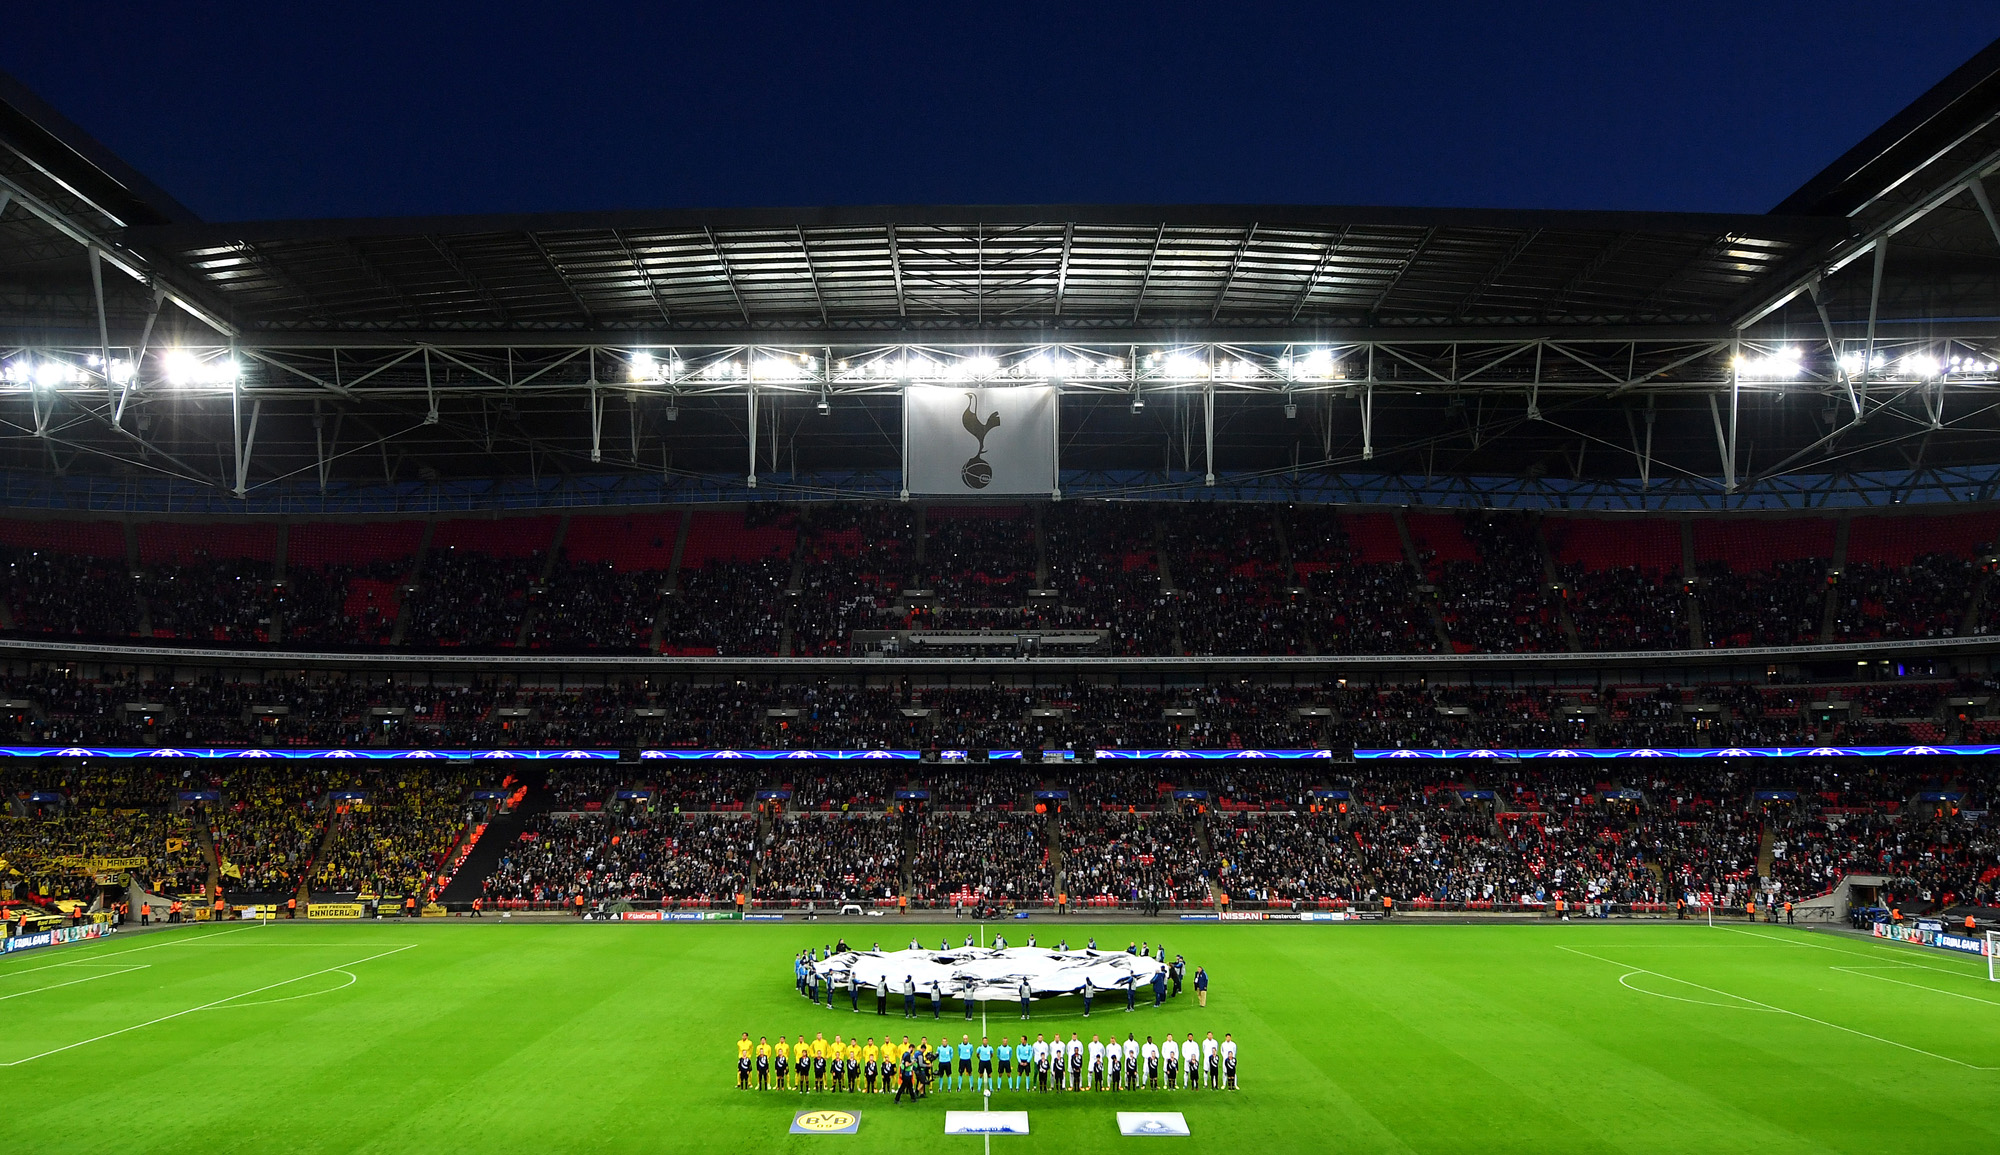 Win two places in an Executive Box at a Spurs' Champions League game football pitch uk